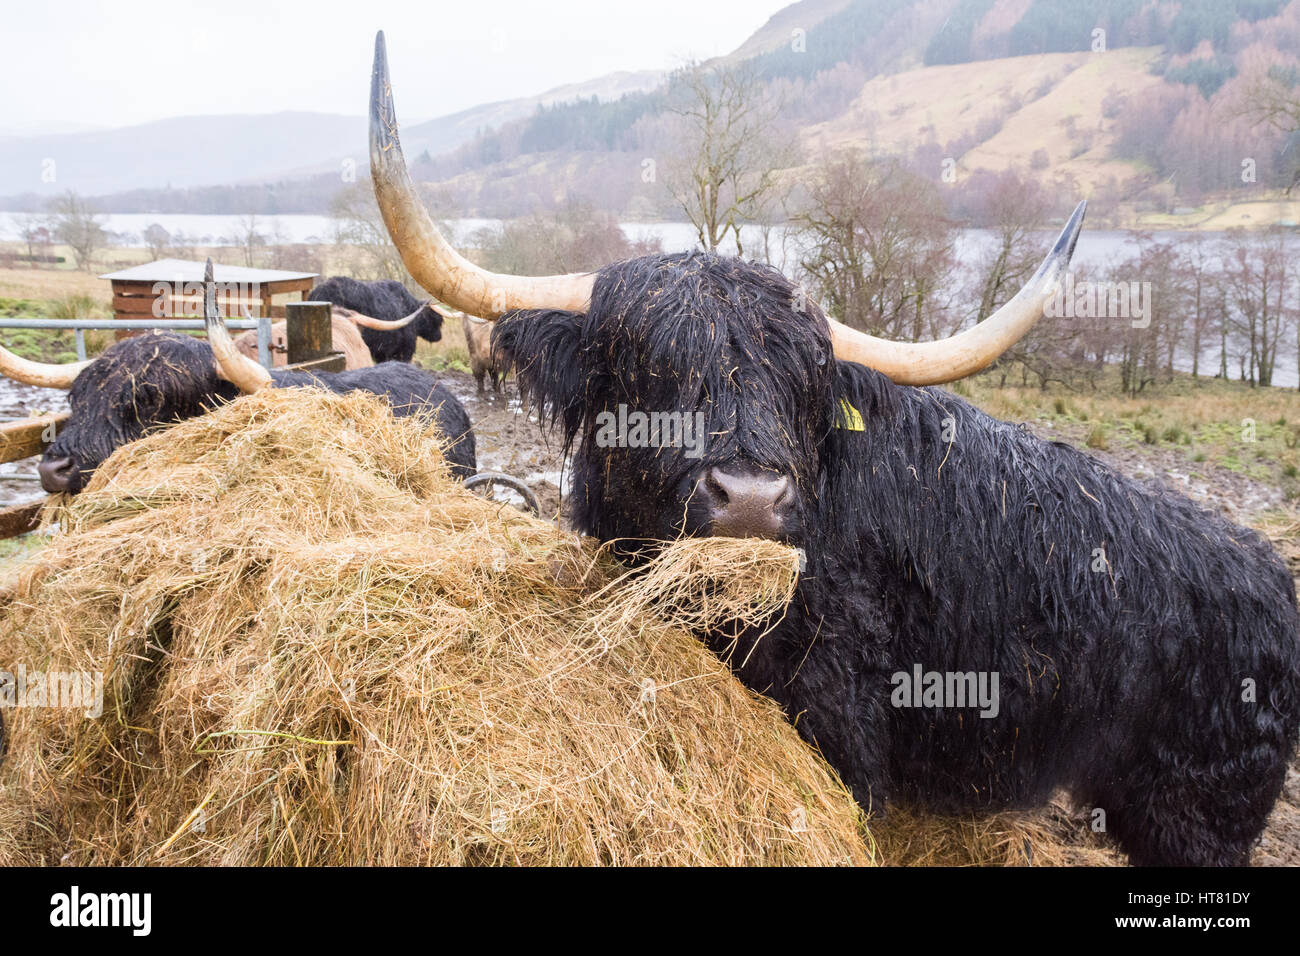 Balquhidder, Lochearnhead, Perthshire, Scotland, UK. 8th March, 2017. UK weather - soggy highland cattle covered - Stock Image